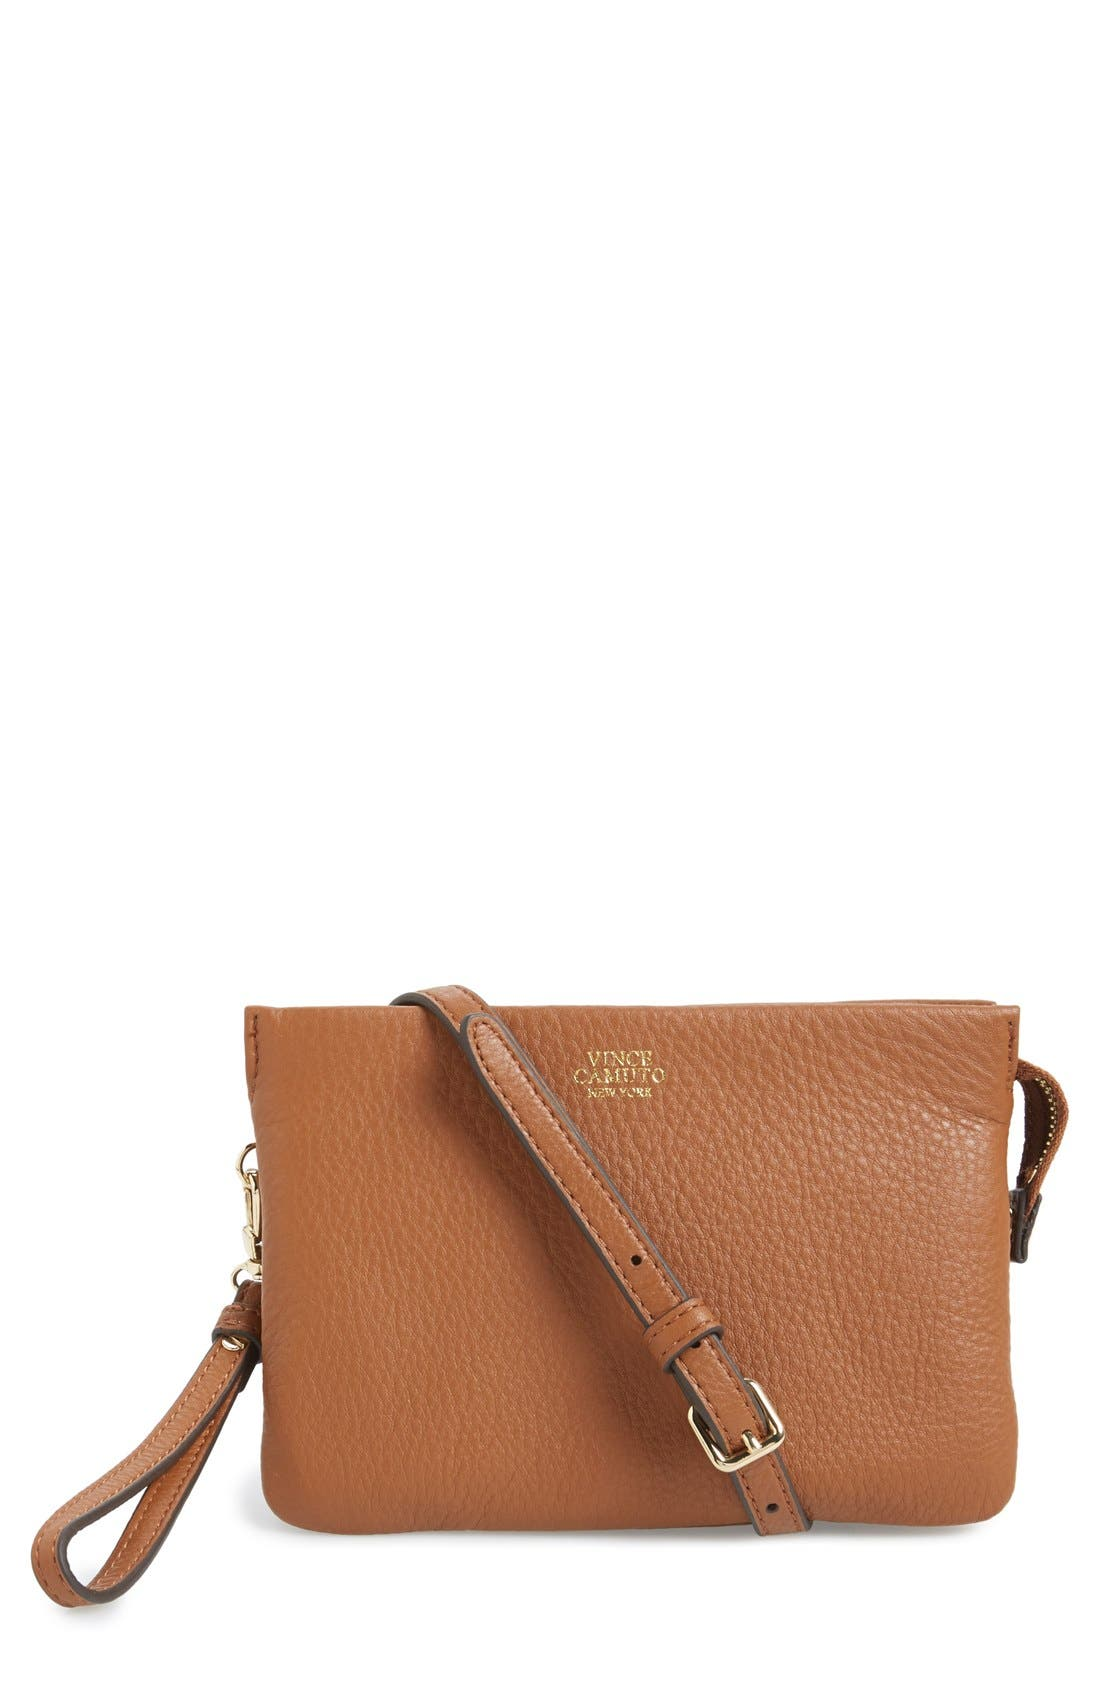 'Cami' Leather Crossbody Bag,                             Main thumbnail 12, color,